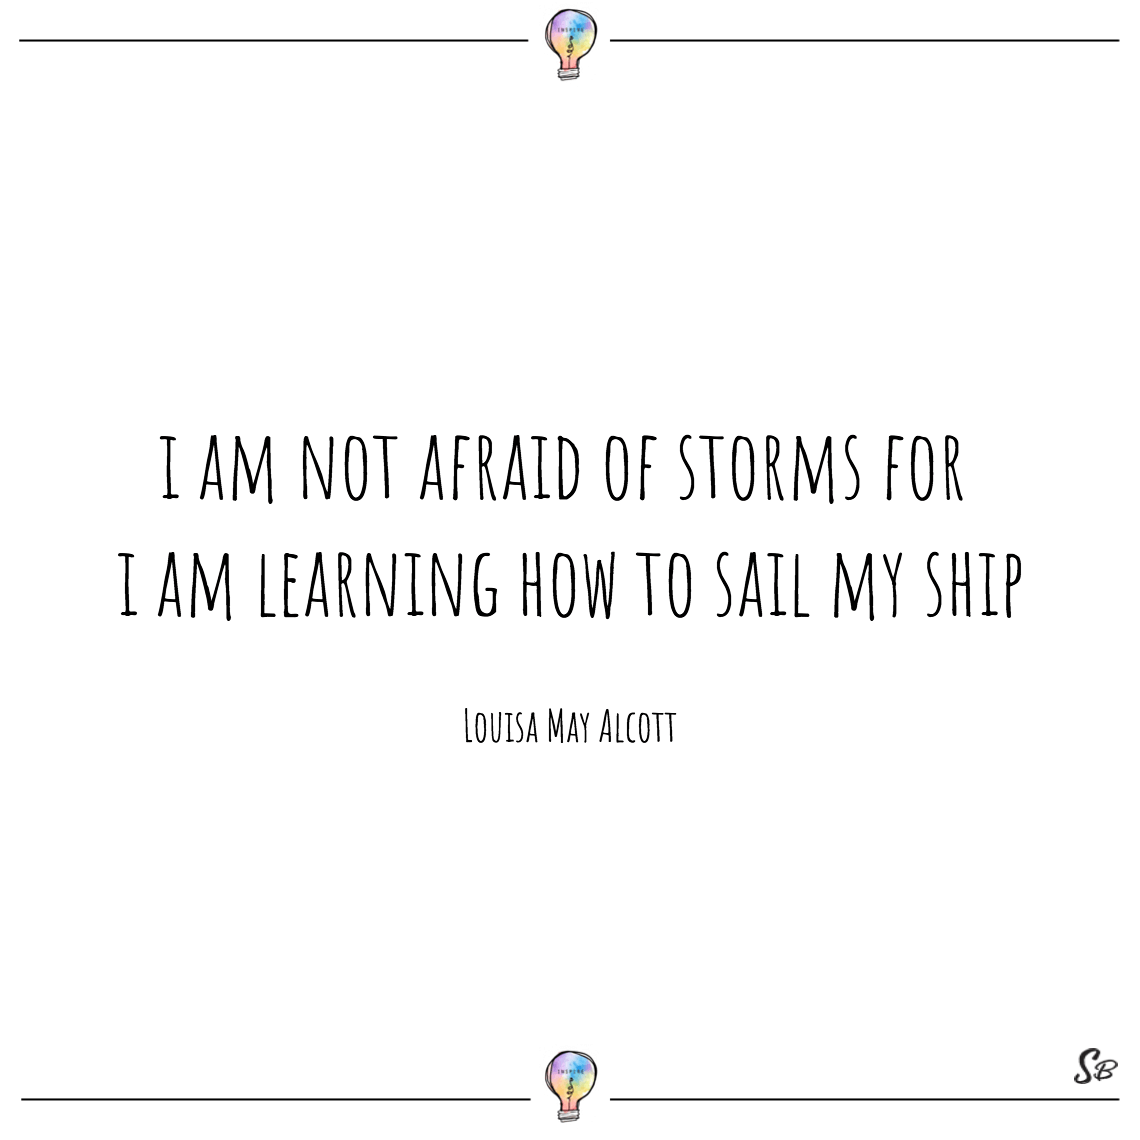 I am not afraid of storms for i am learning how to sail my ship louisa may alcott